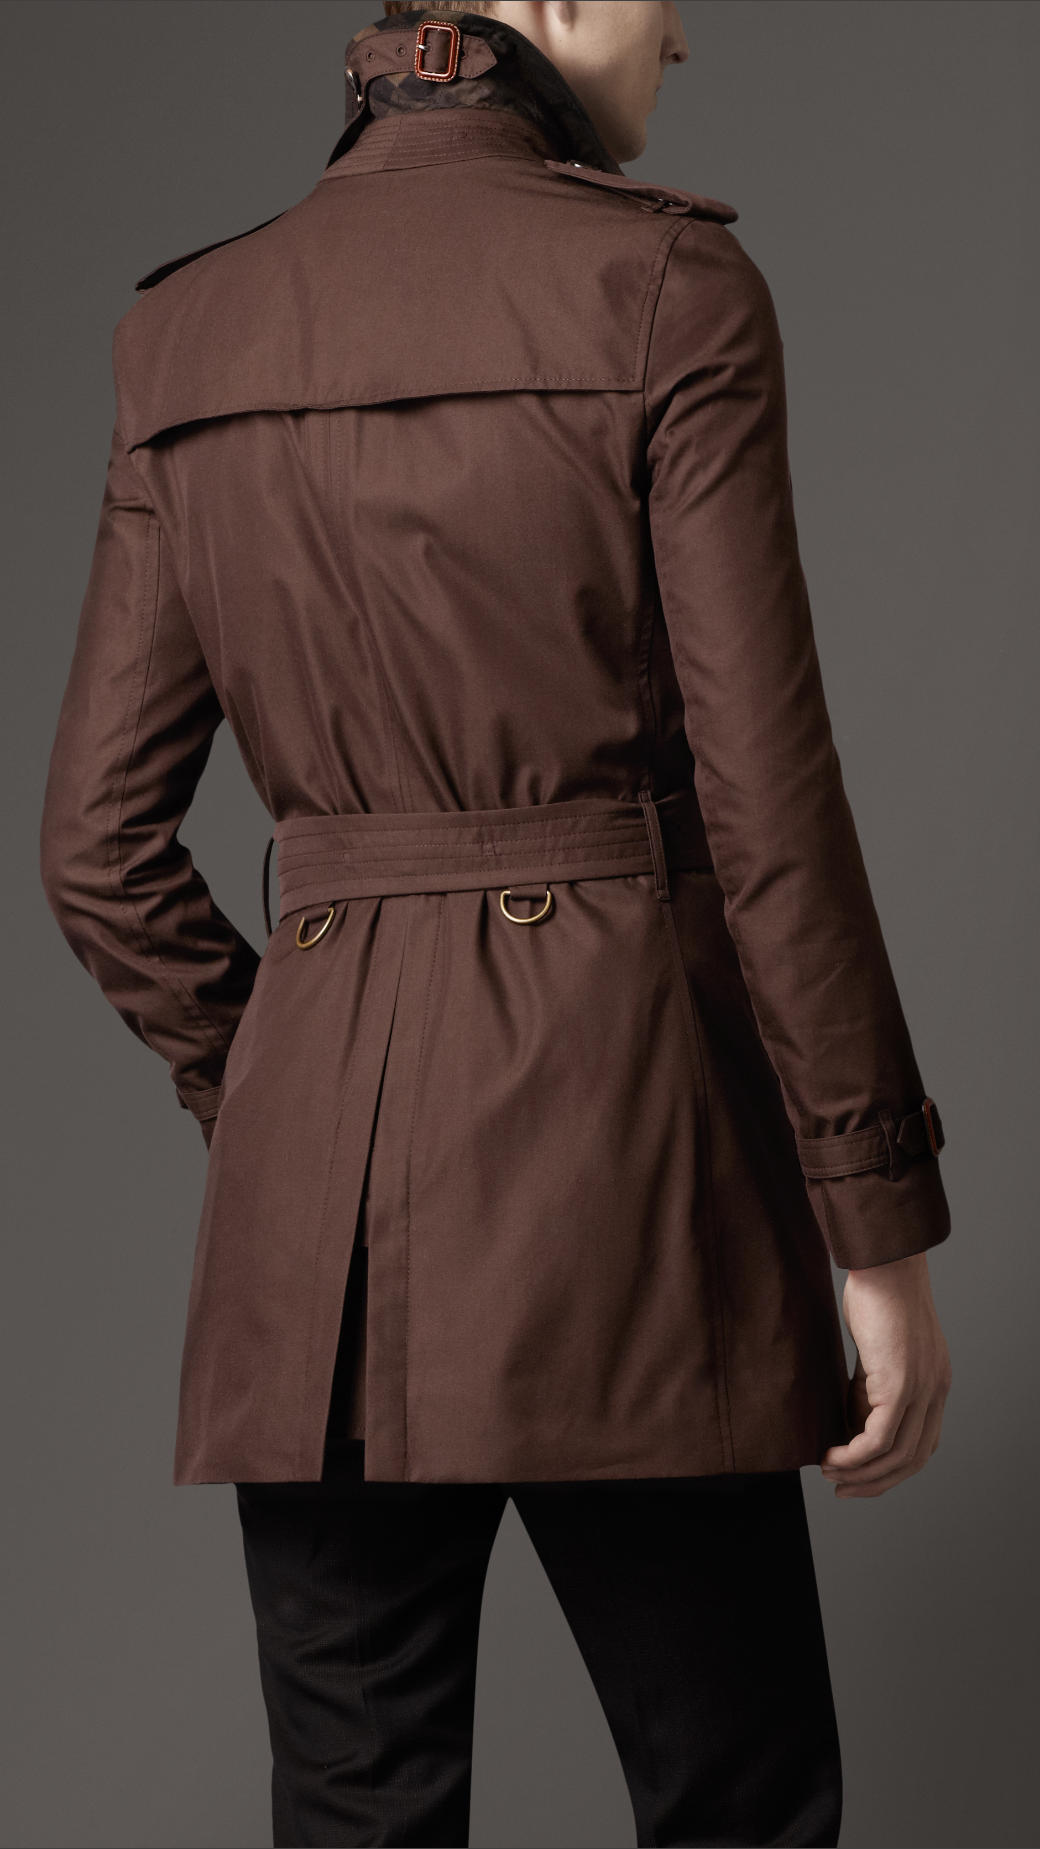 Lyst - Burberry Midlength Cotton Gabardine Trench Coat in Brown for Men 7dba6a3c8f3